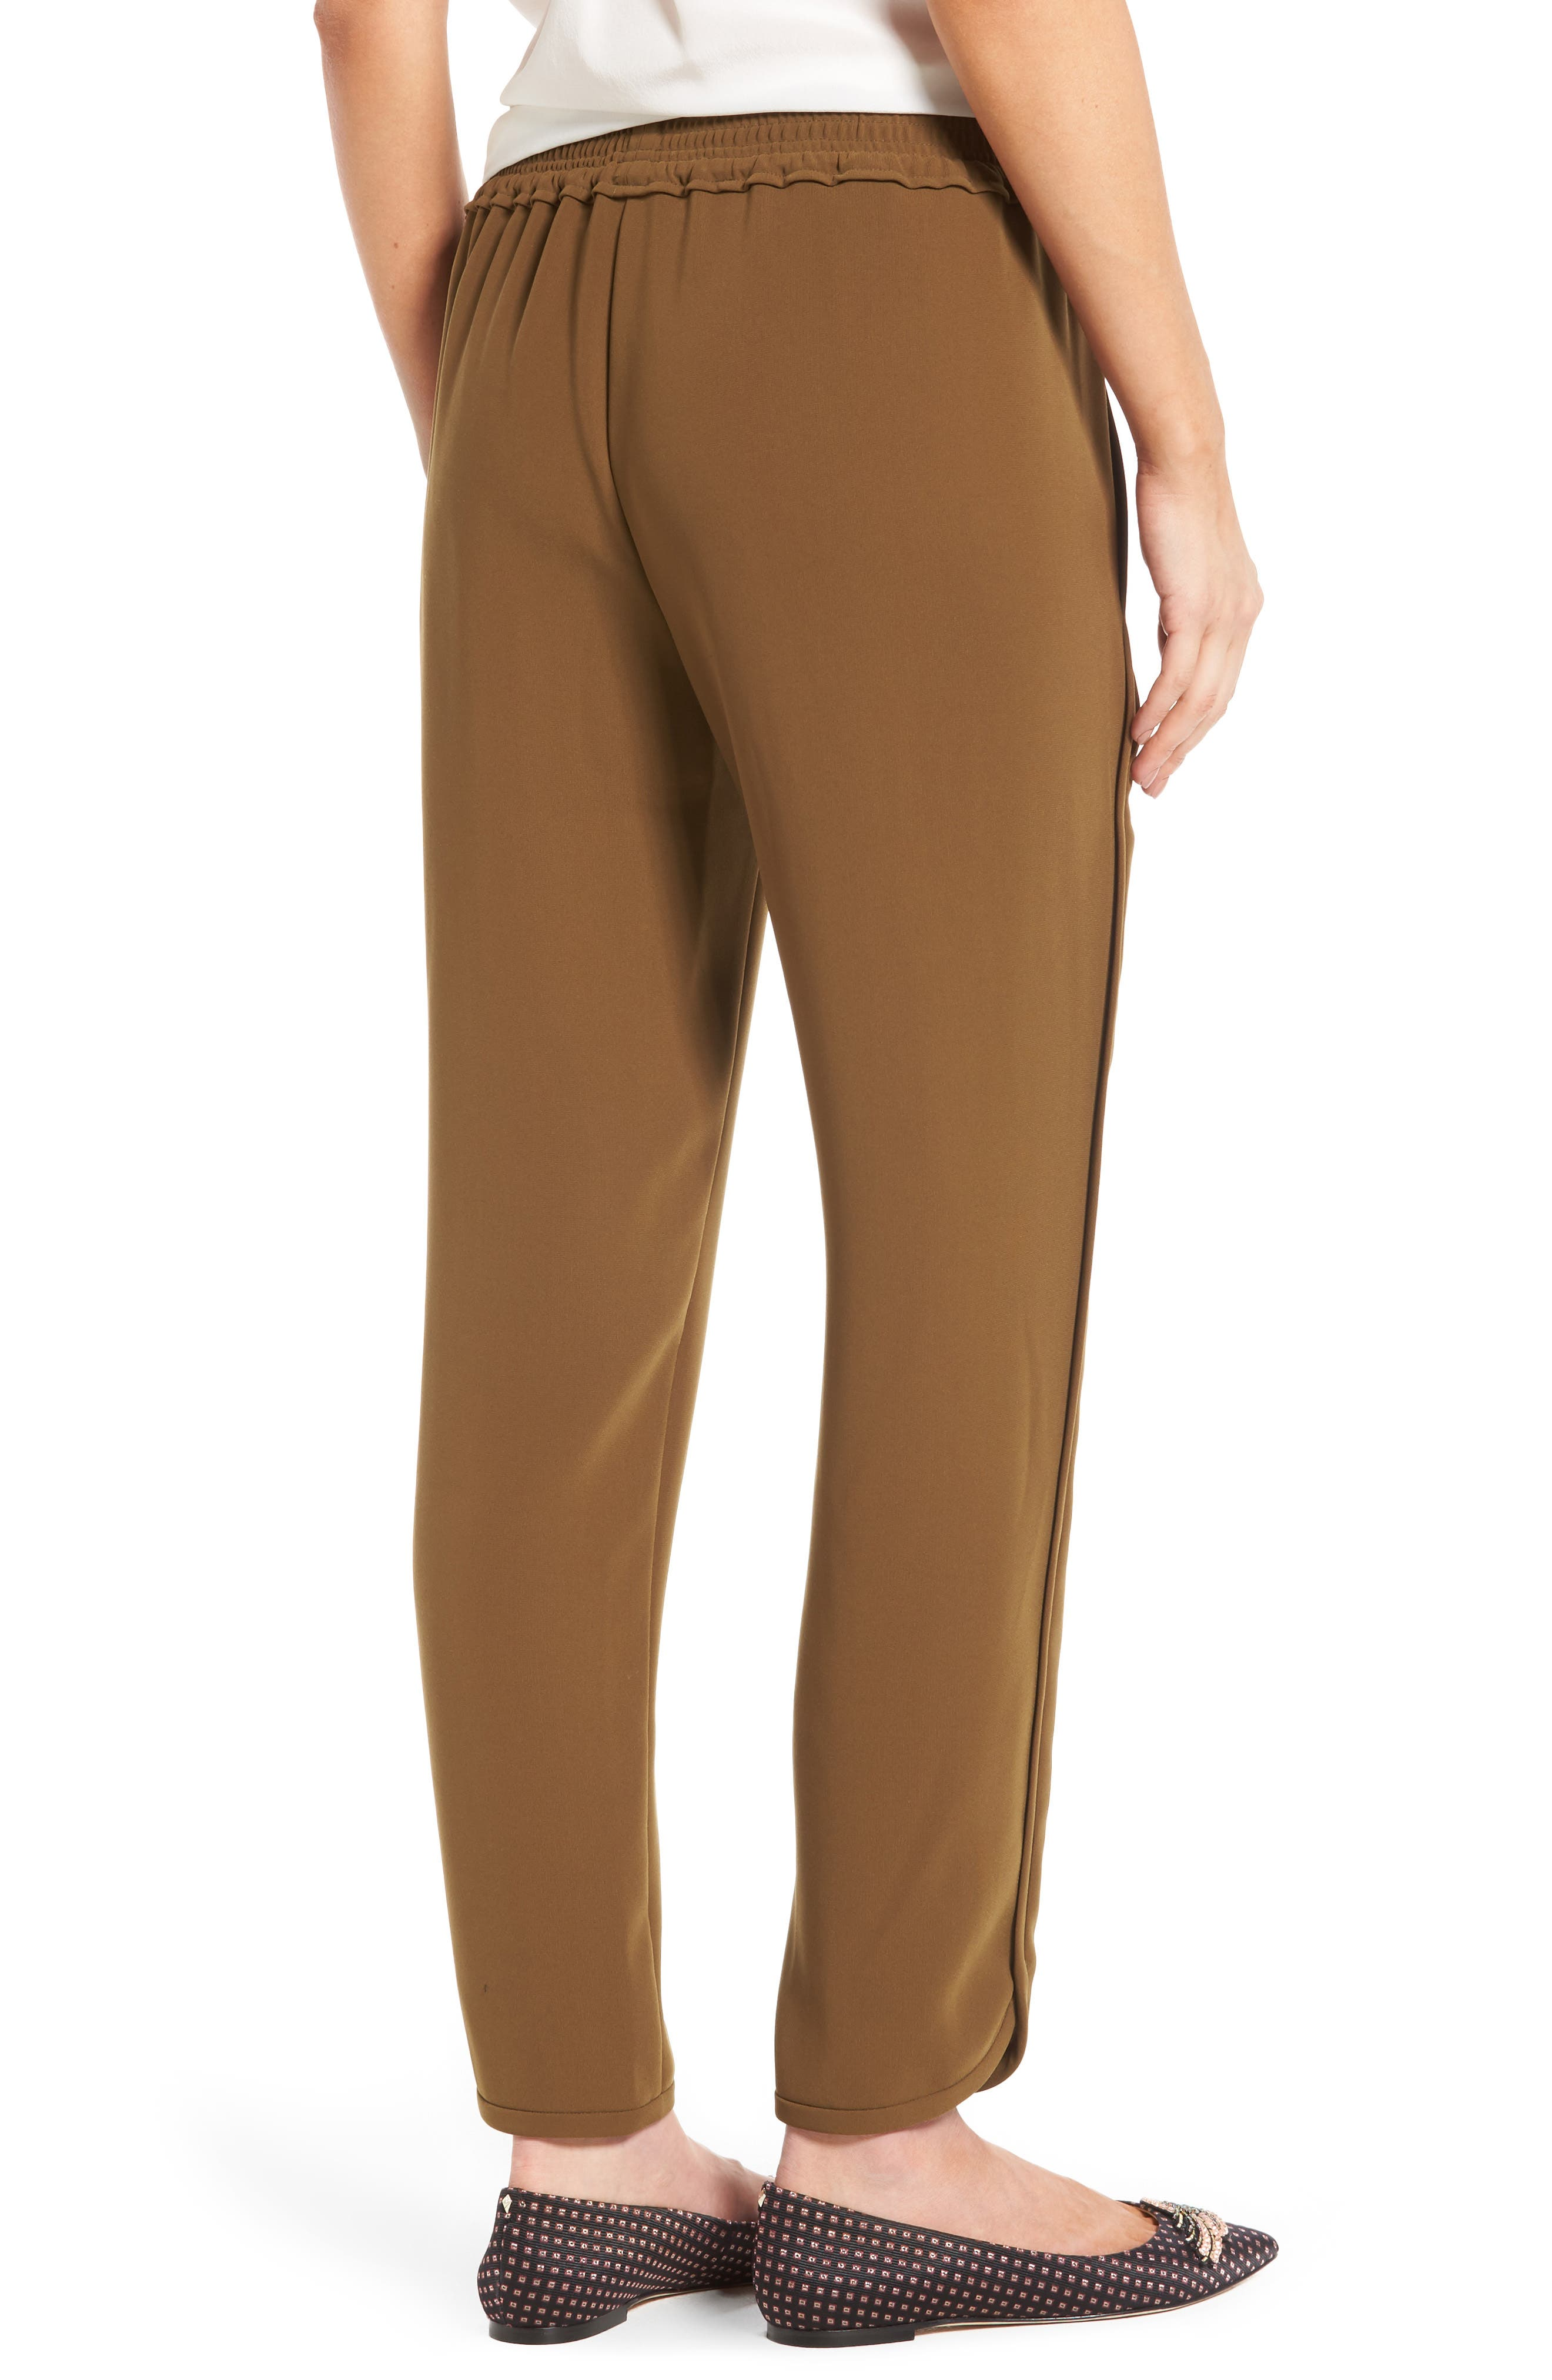 Alternate Image 2  - J.Crew Reese Pants (Regular & Petite)